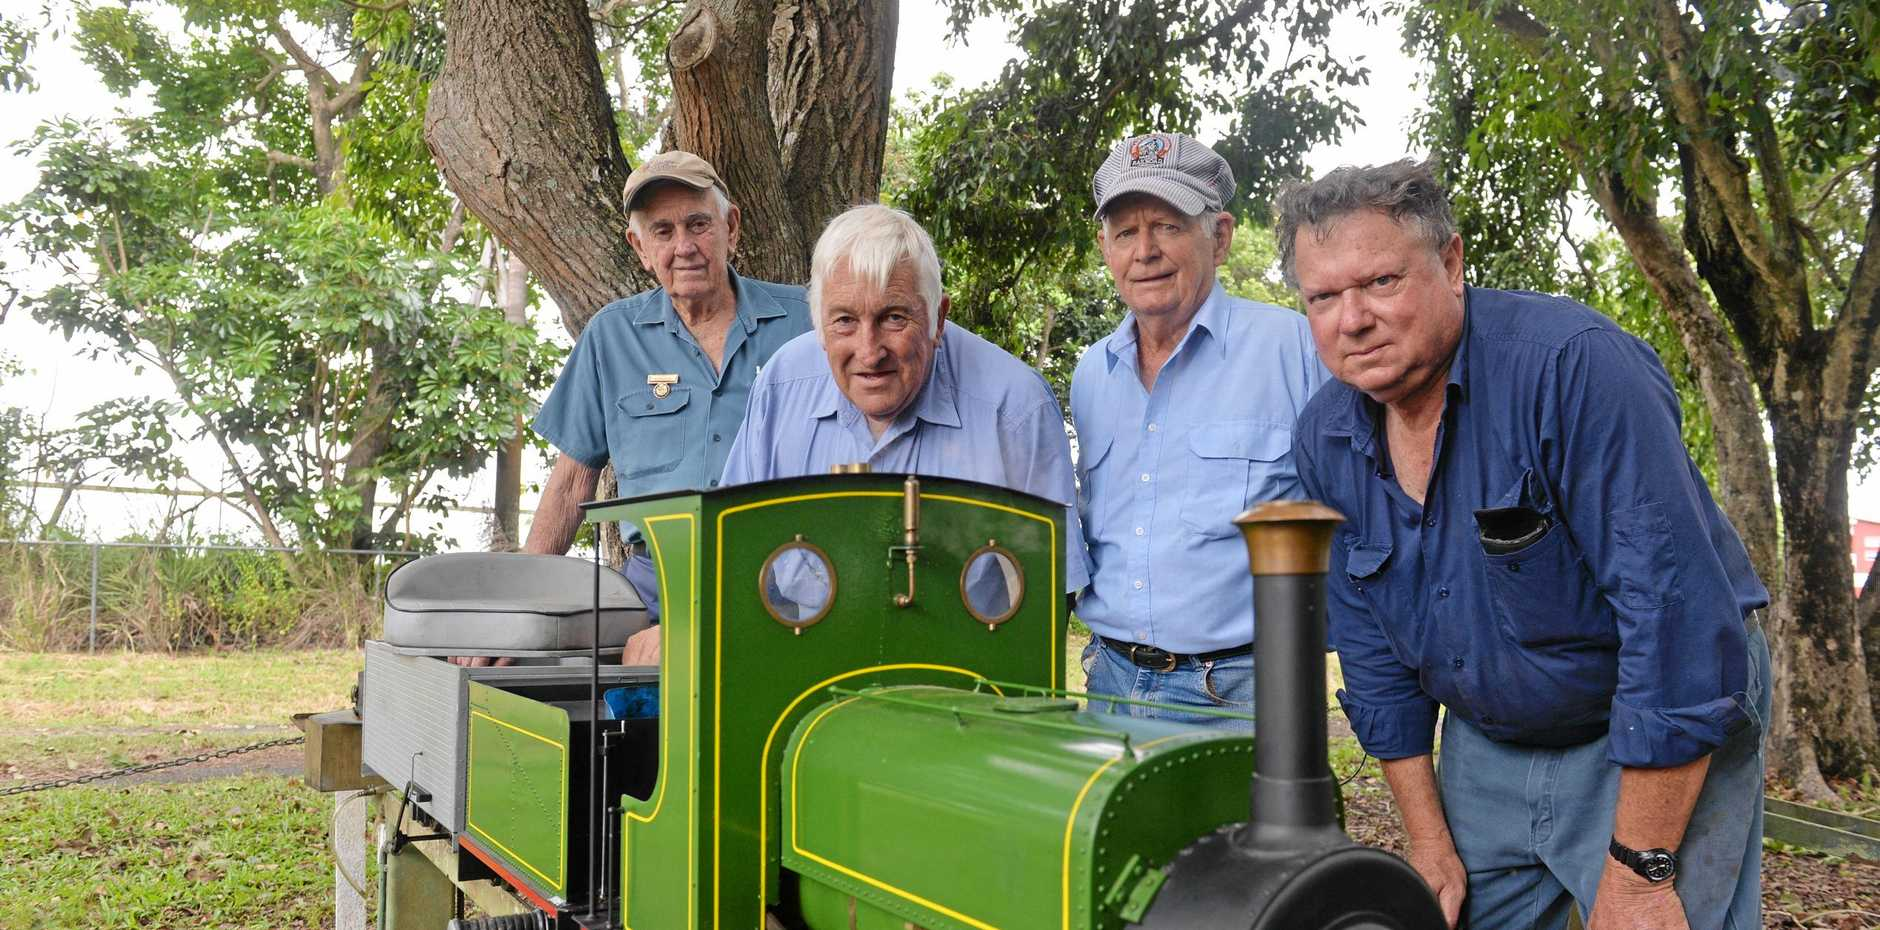 John Slipper, Bernie Watson, Brian anderson and Colin Etwell, members of the Mackay Model Society of Engineers.